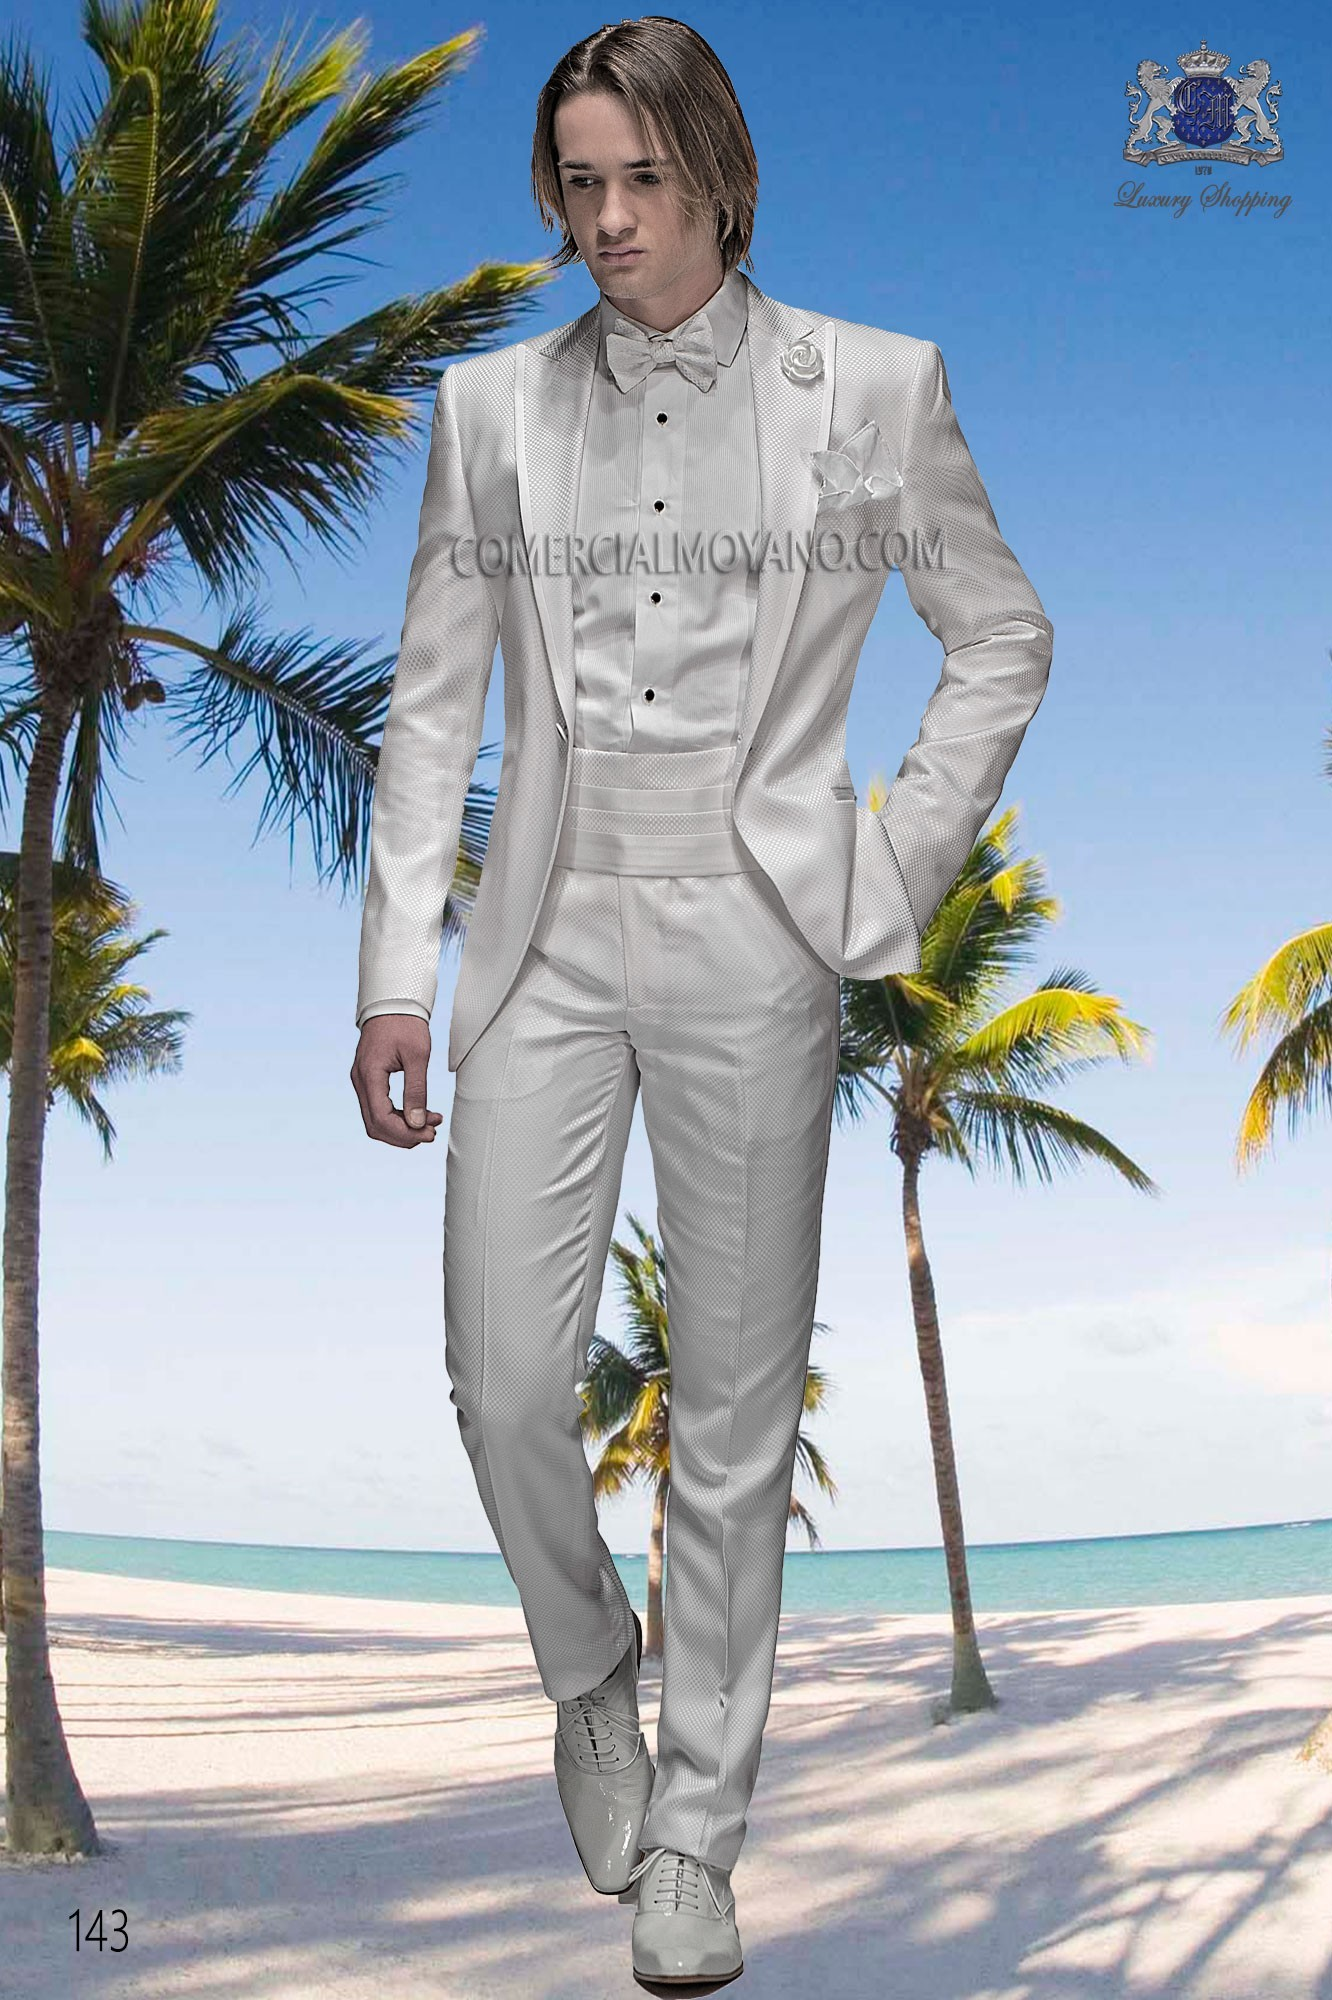 Hipster white men wedding suit model 143 Ottavio Nuccio Gala